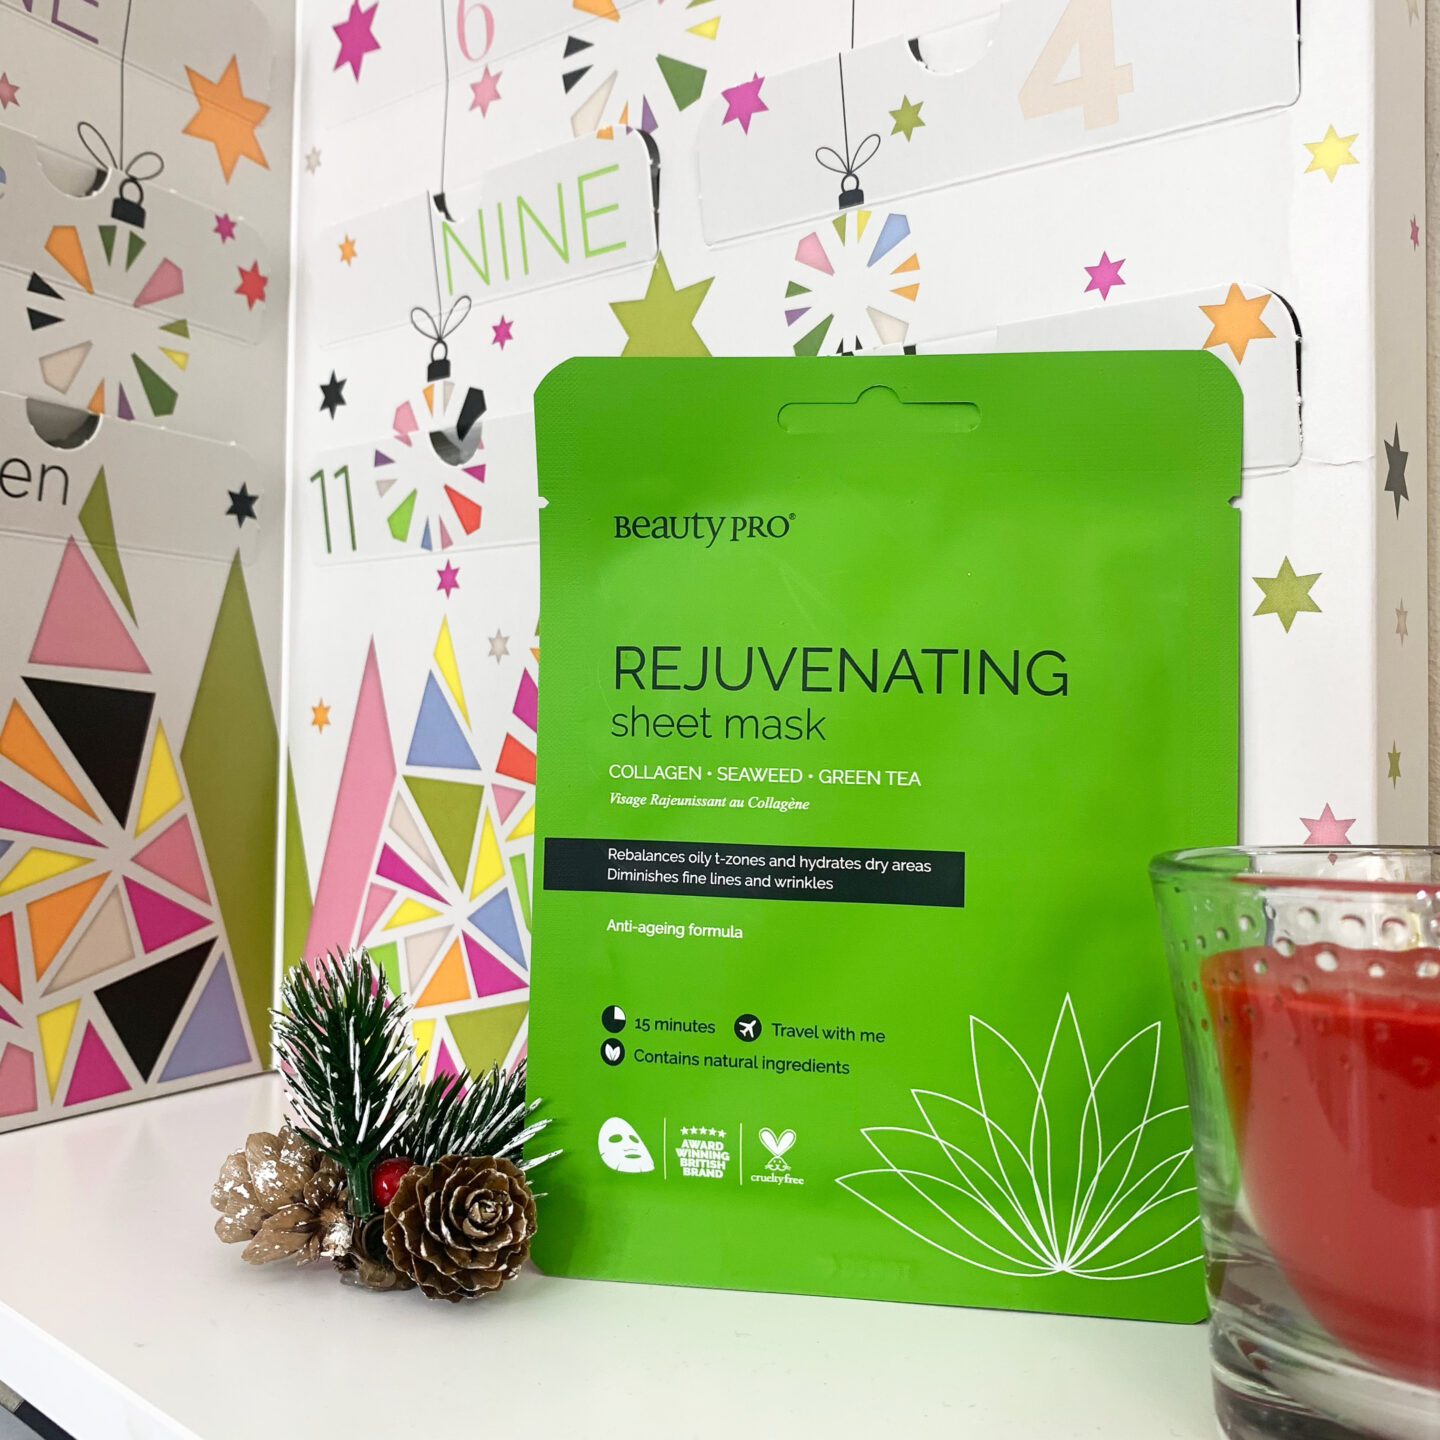 Rejuvenating Sheet Mask  Beauty Pro 12 Days of Christmask Advent Calendar 2020 - Miss Boux